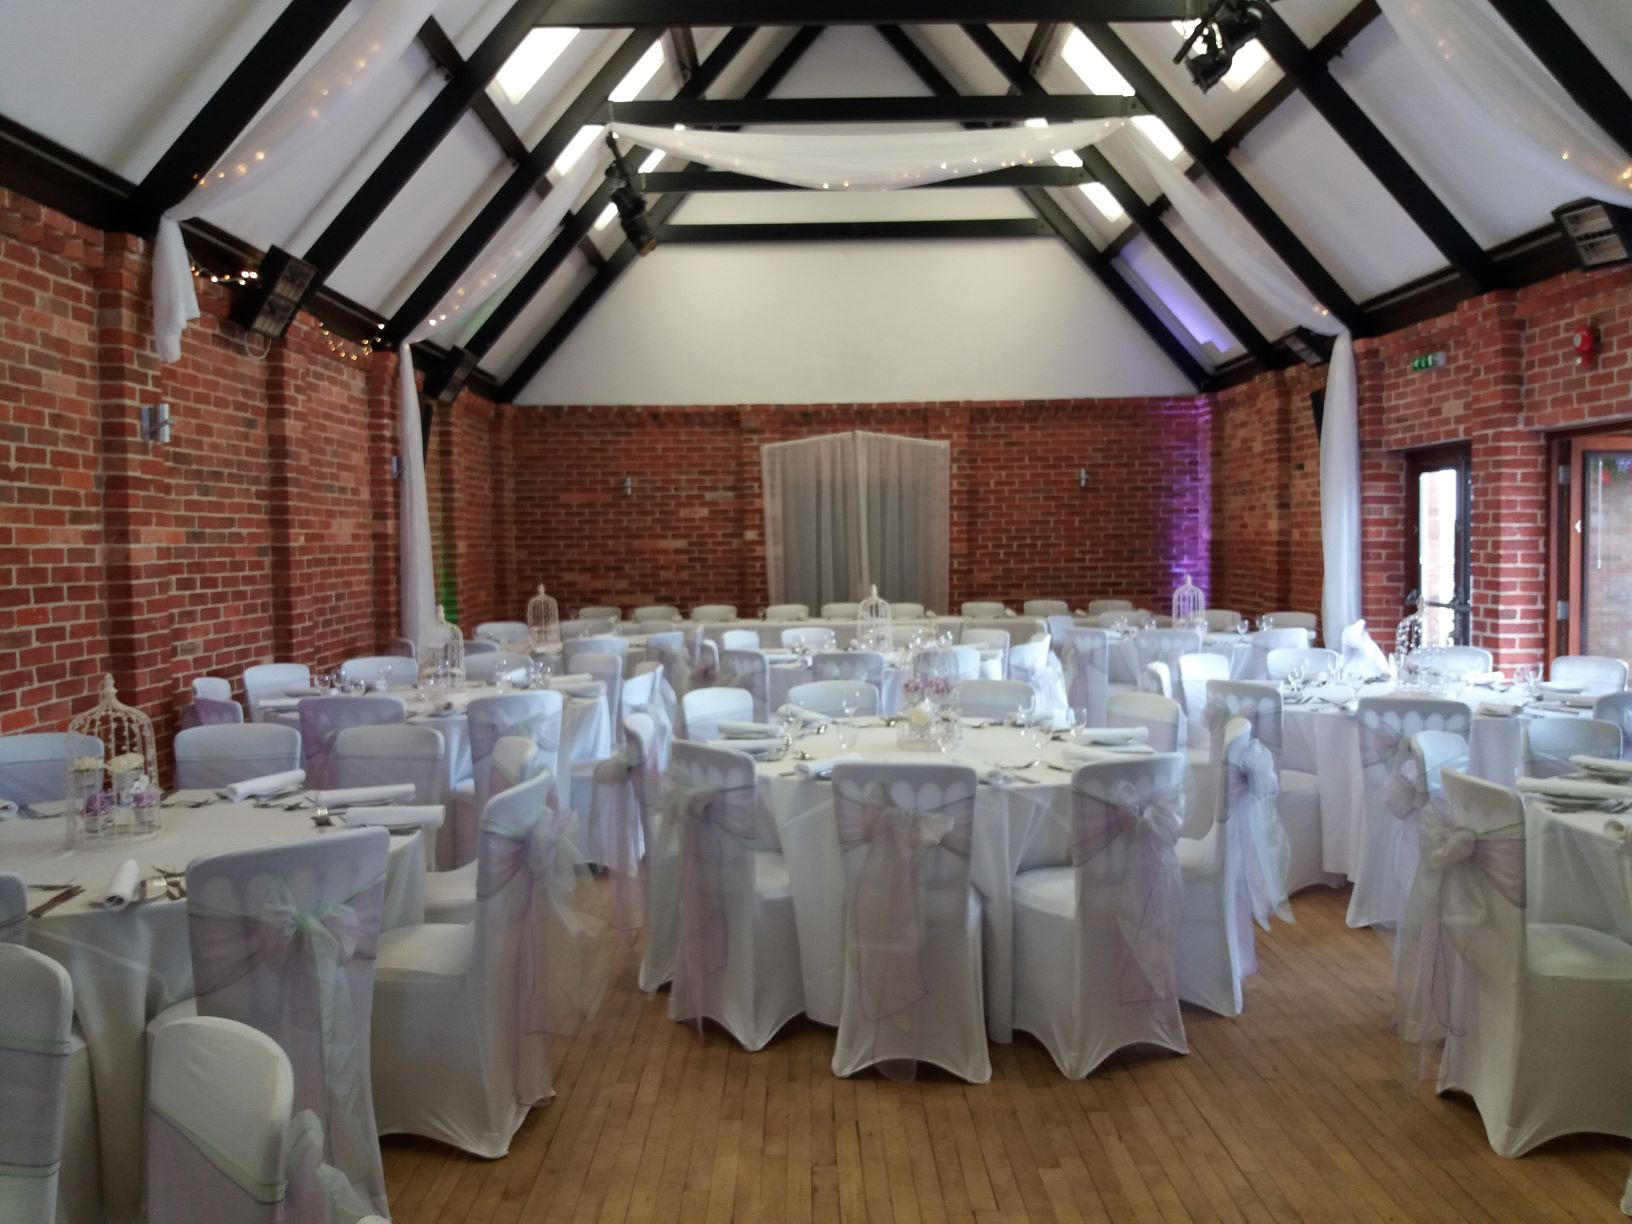 Ceiling drapes, chair covers and sashes by Add A Little Sparkle at Eversholt village Hall